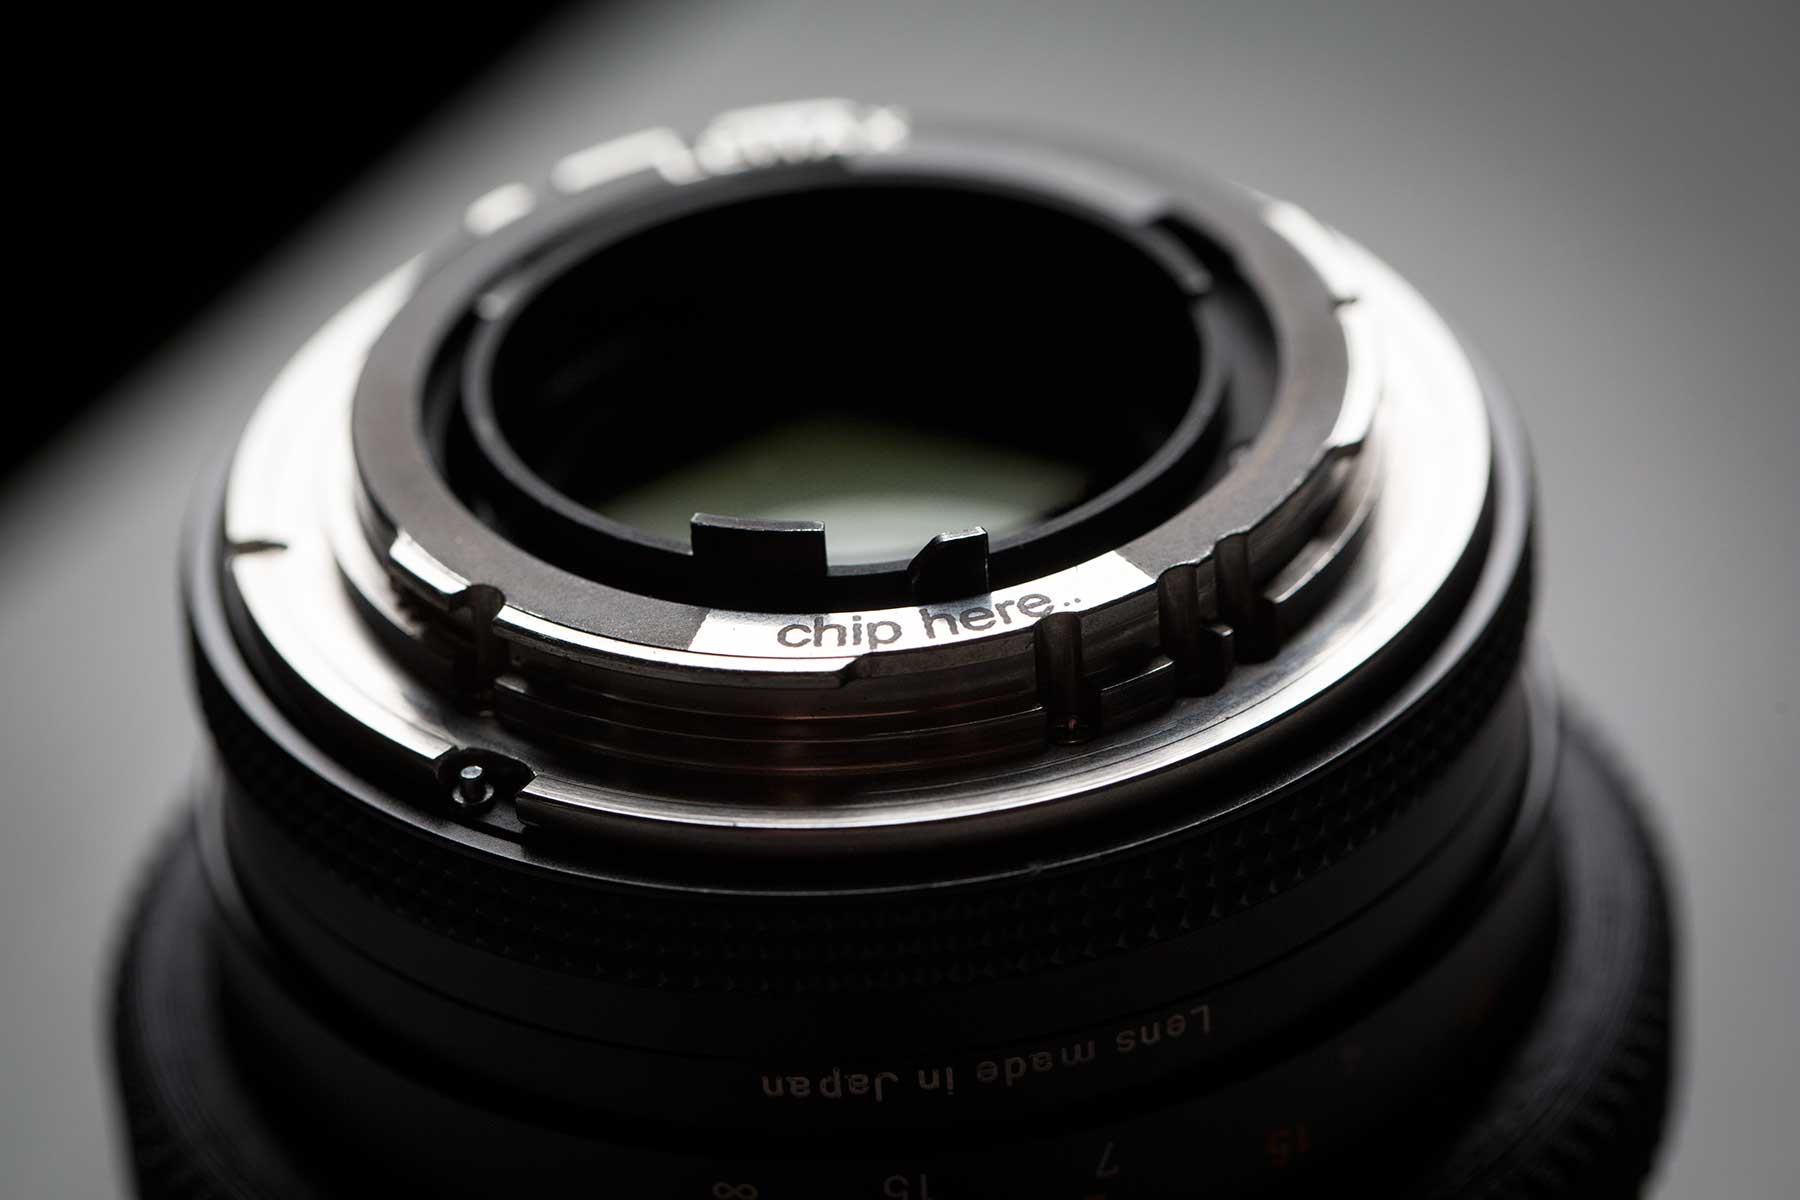 One way to modify Contax Zeiss lenses to work with Metabones